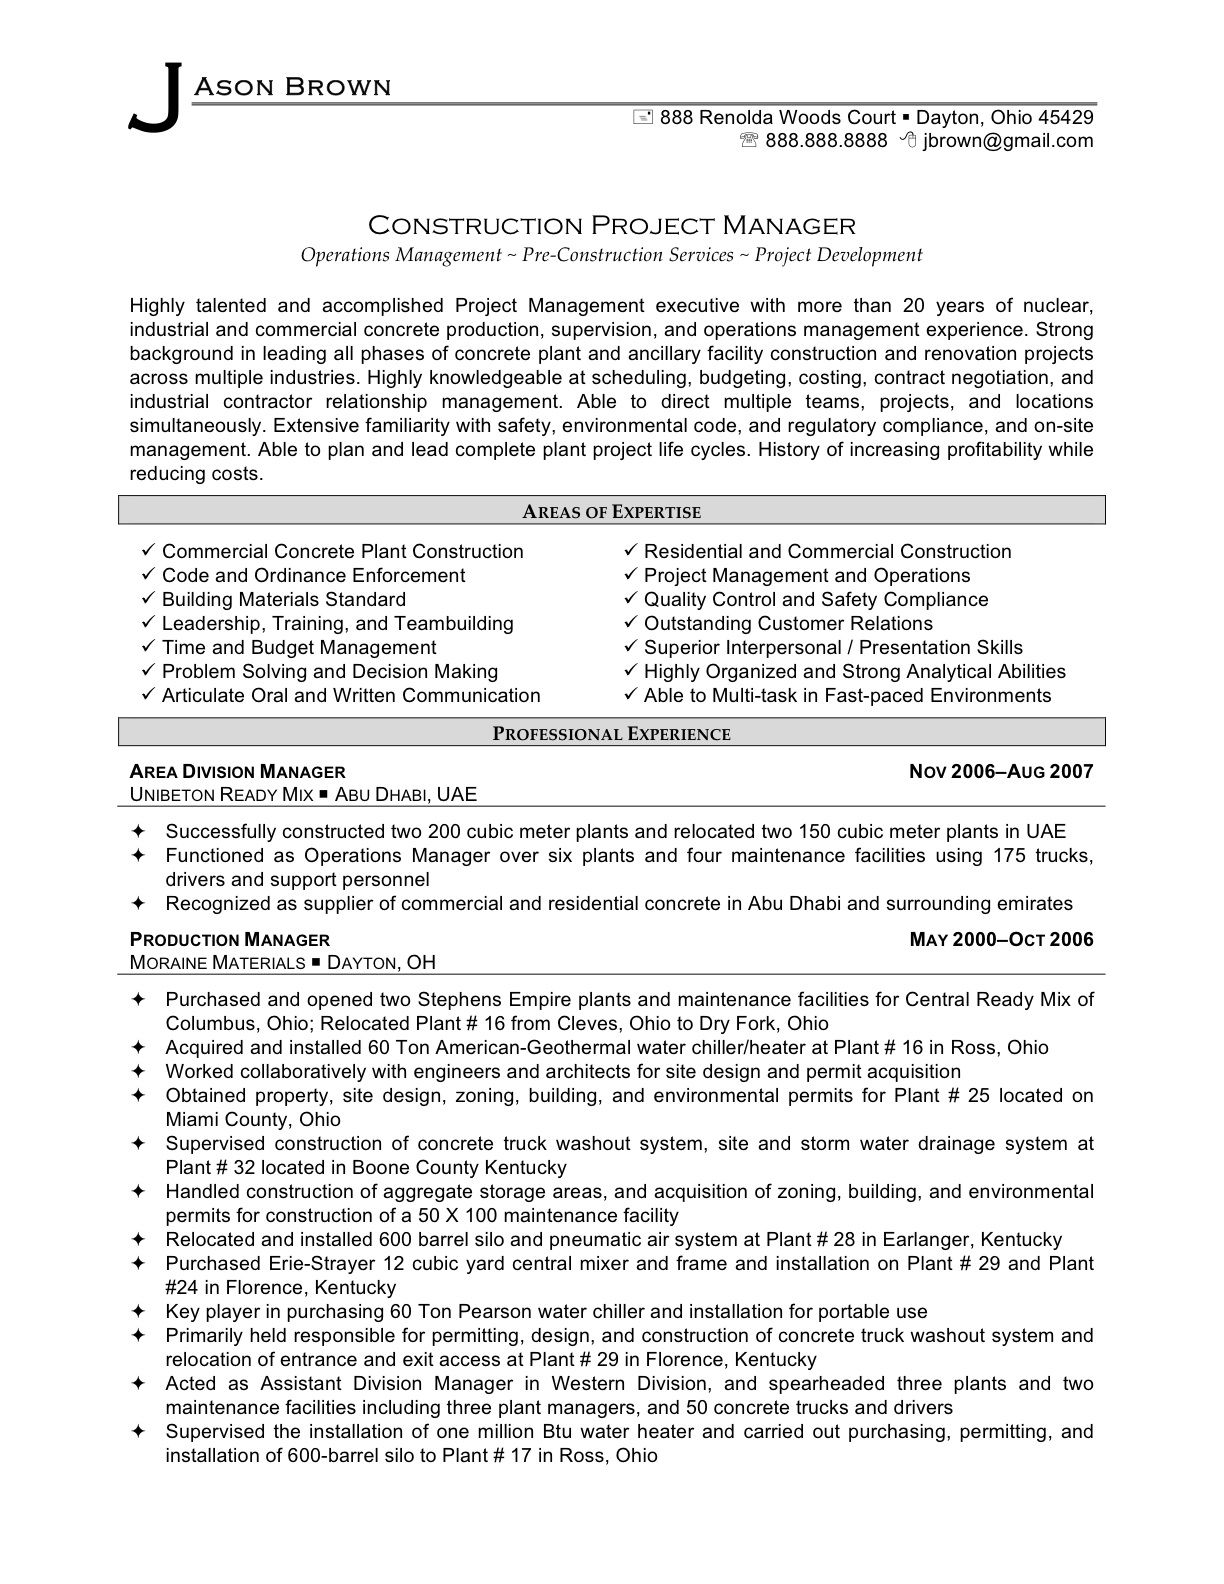 resume templates project manager | Residential or Commercial ...